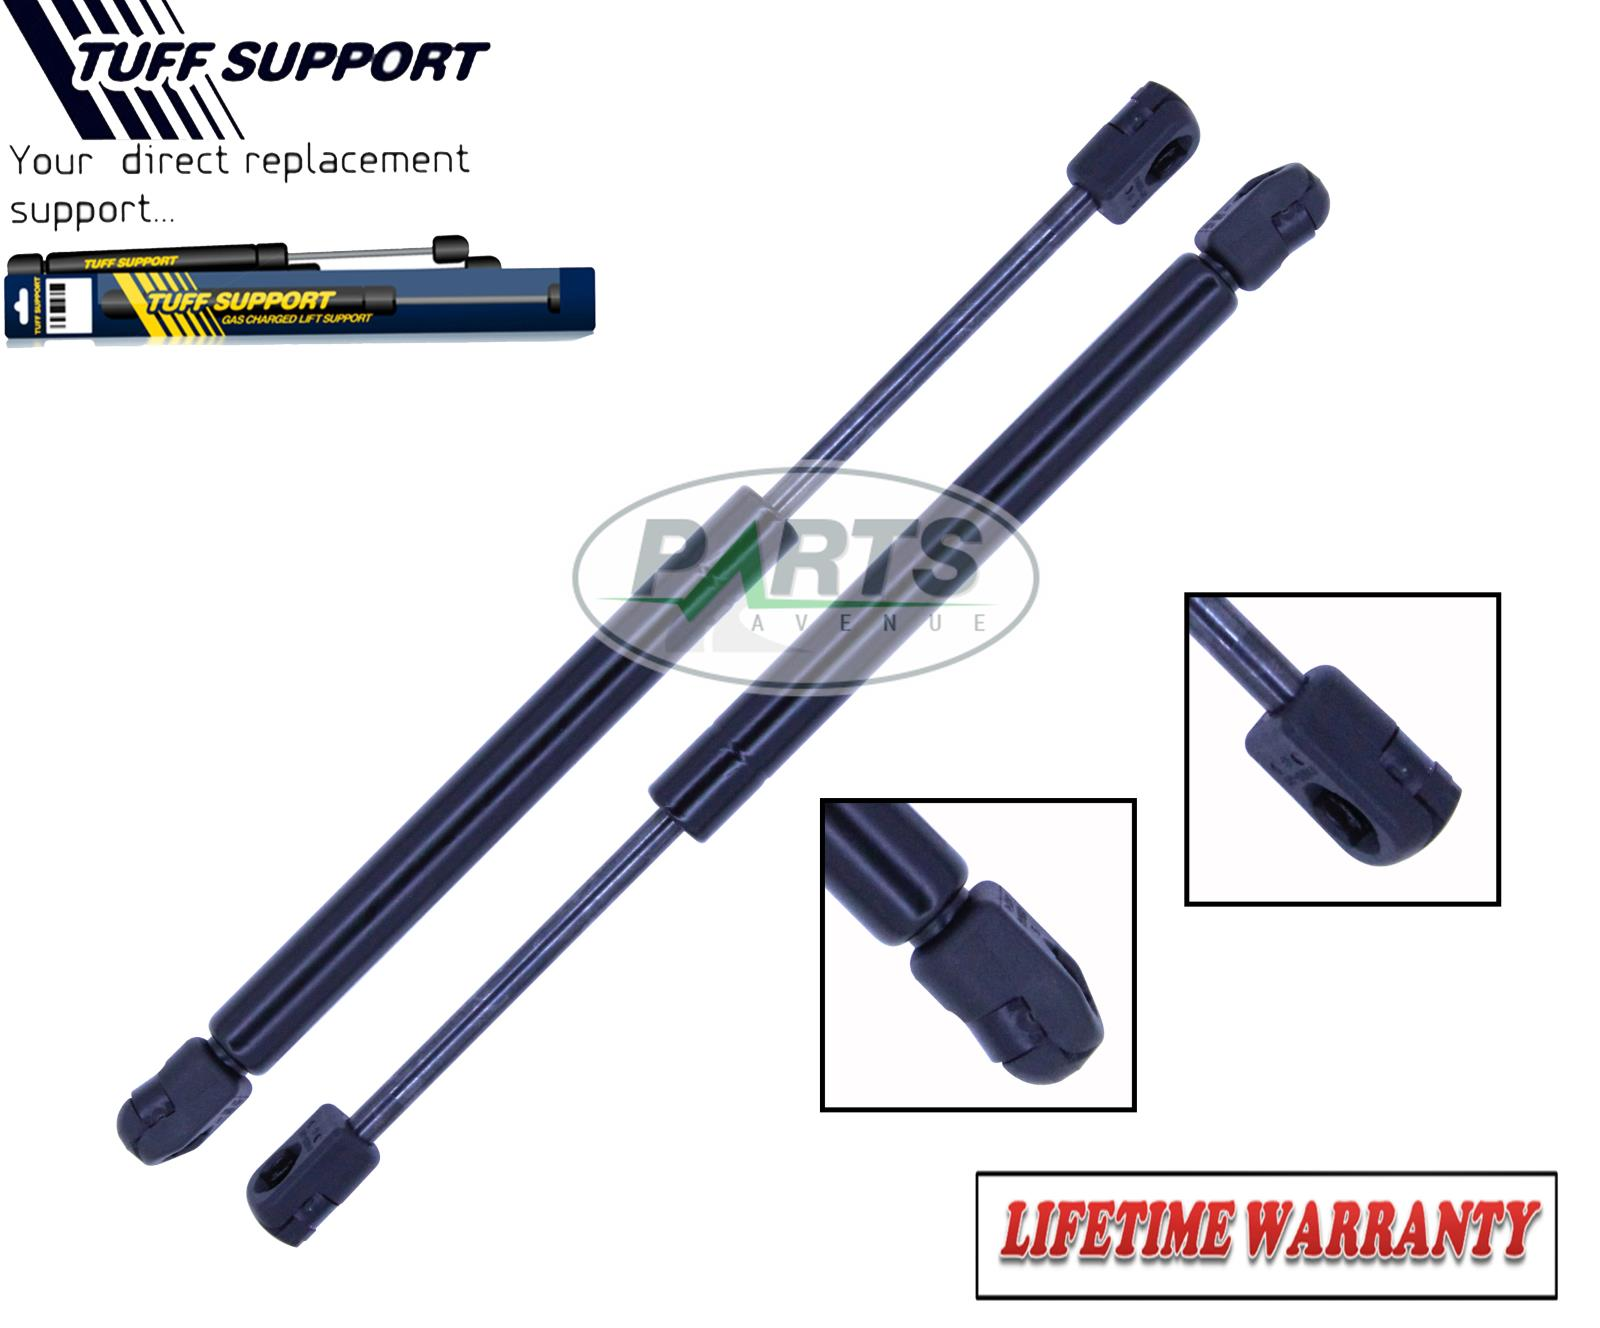 2 FRONT HOOD LIFT SUPPORTS SHOCKS STRUTS ARMS PROP ROD DAMPER FITS MERCEDES BENZ